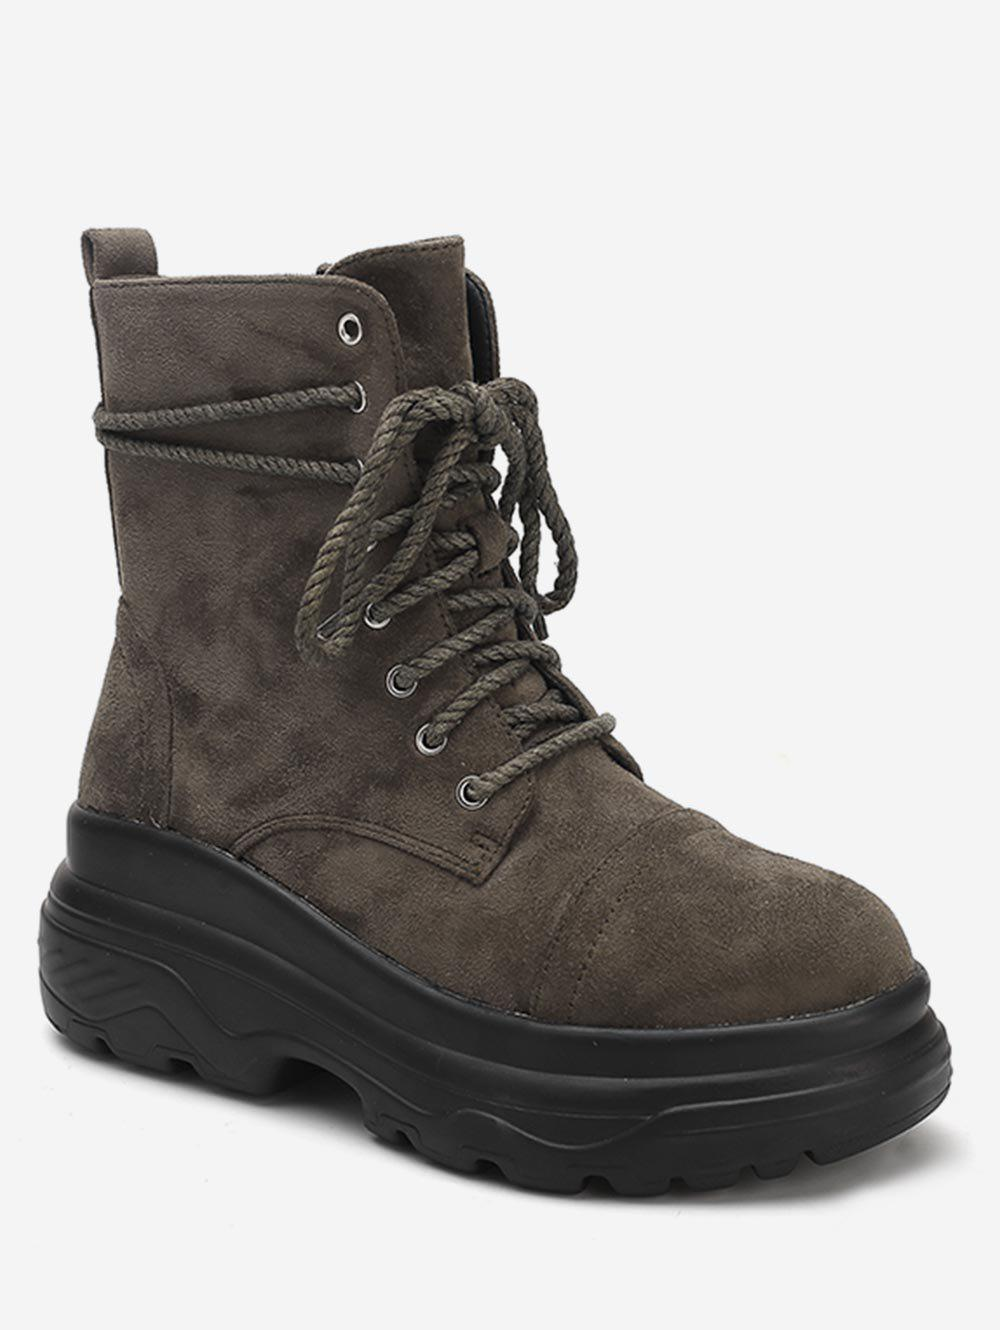 Lace Up Platform Suede Ankle Combat Boots - ARMY GREEN EU 38